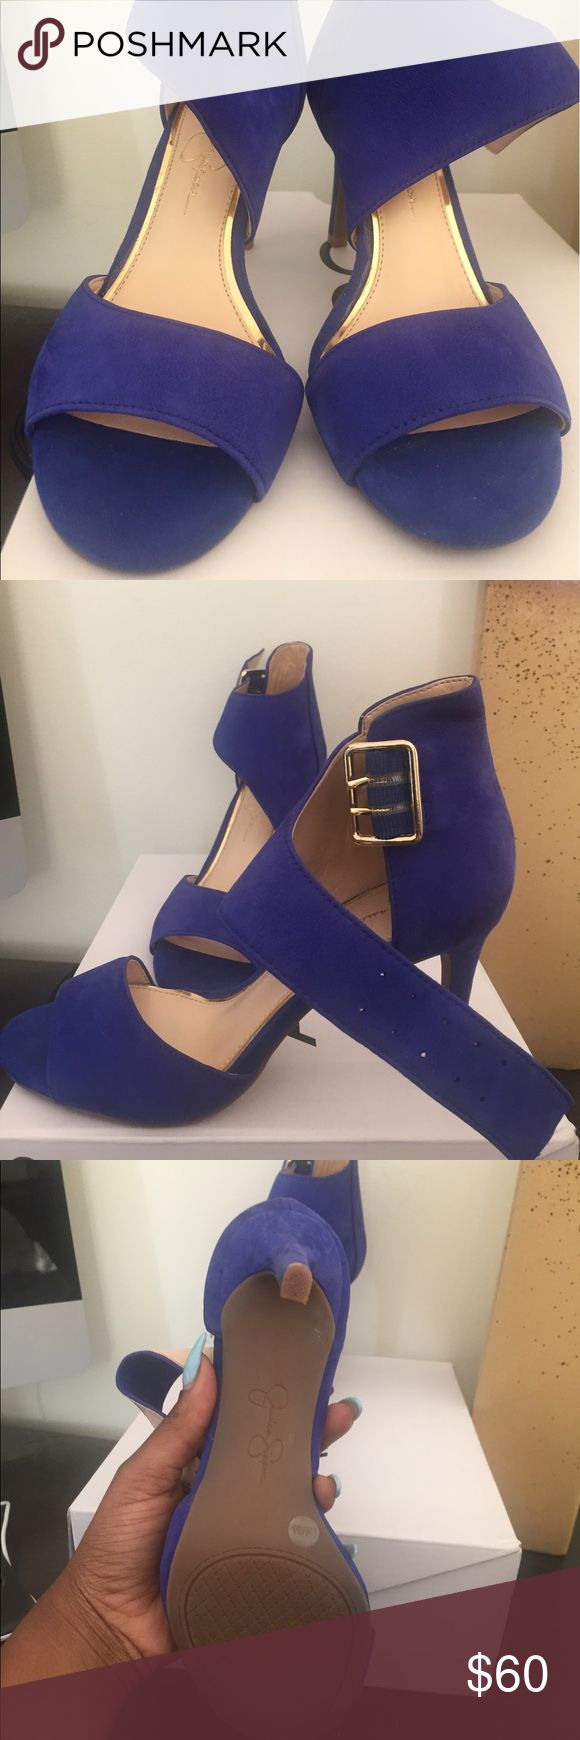 Jessica Simpson Royal Blue Heels Suede royal blue sandals worn only twice, very comfortable! I love these shoes just to small for me feet this is a size 6 true to size Jessica Simpson Shoes Heels